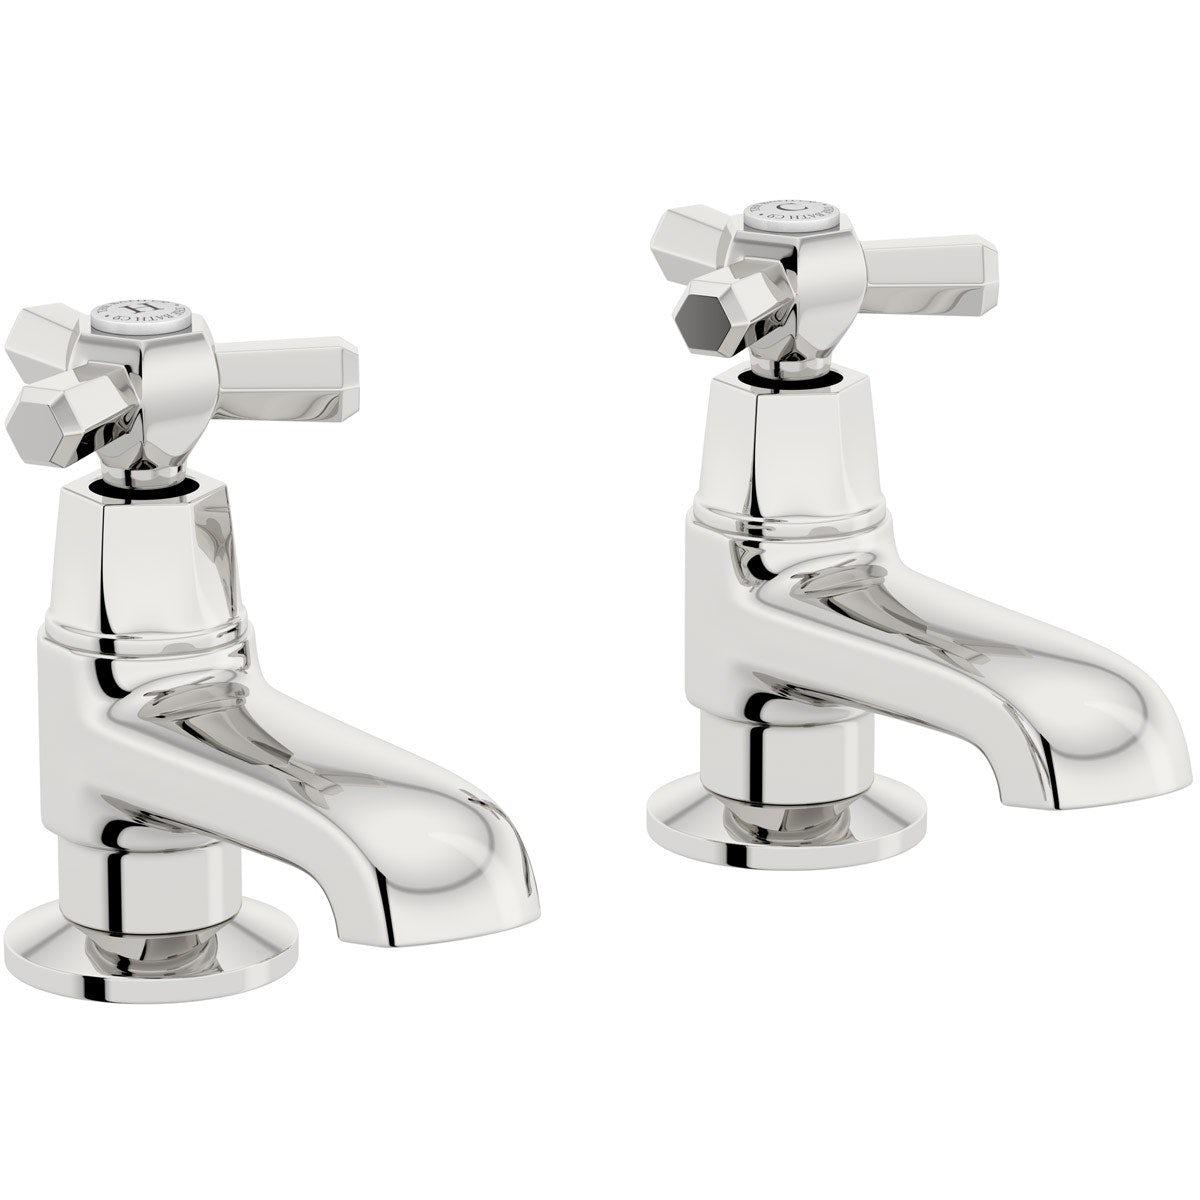 The Bath Co. Beaumont bath pillar taps offer pack